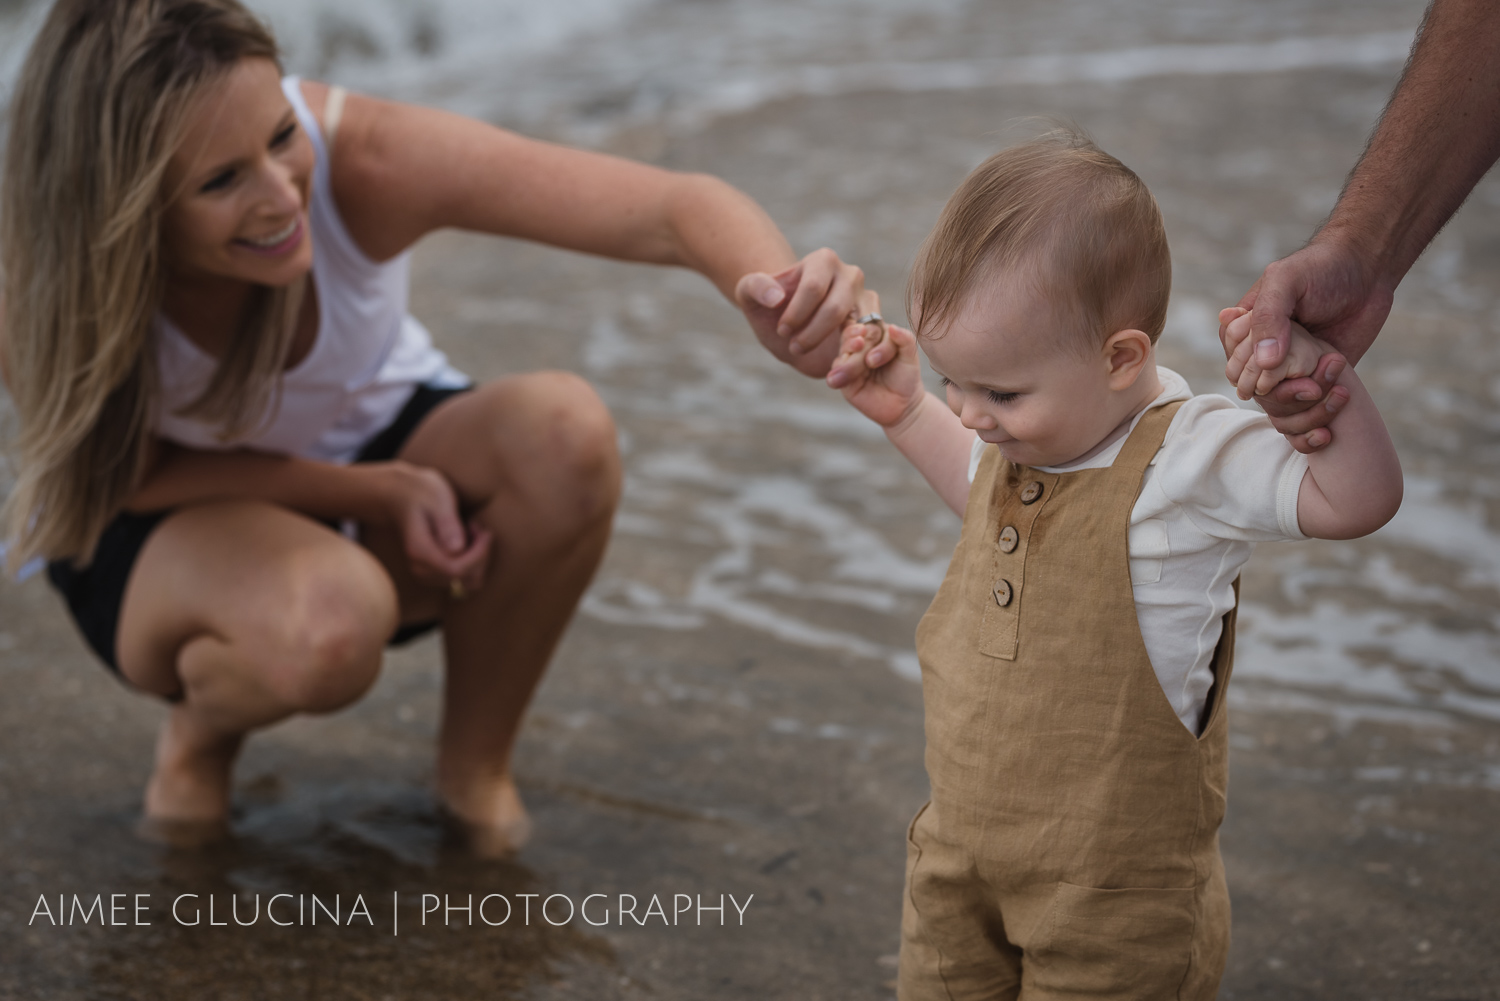 George Peat 1 Year Session by Aimee Glucina Photography-11.jpg